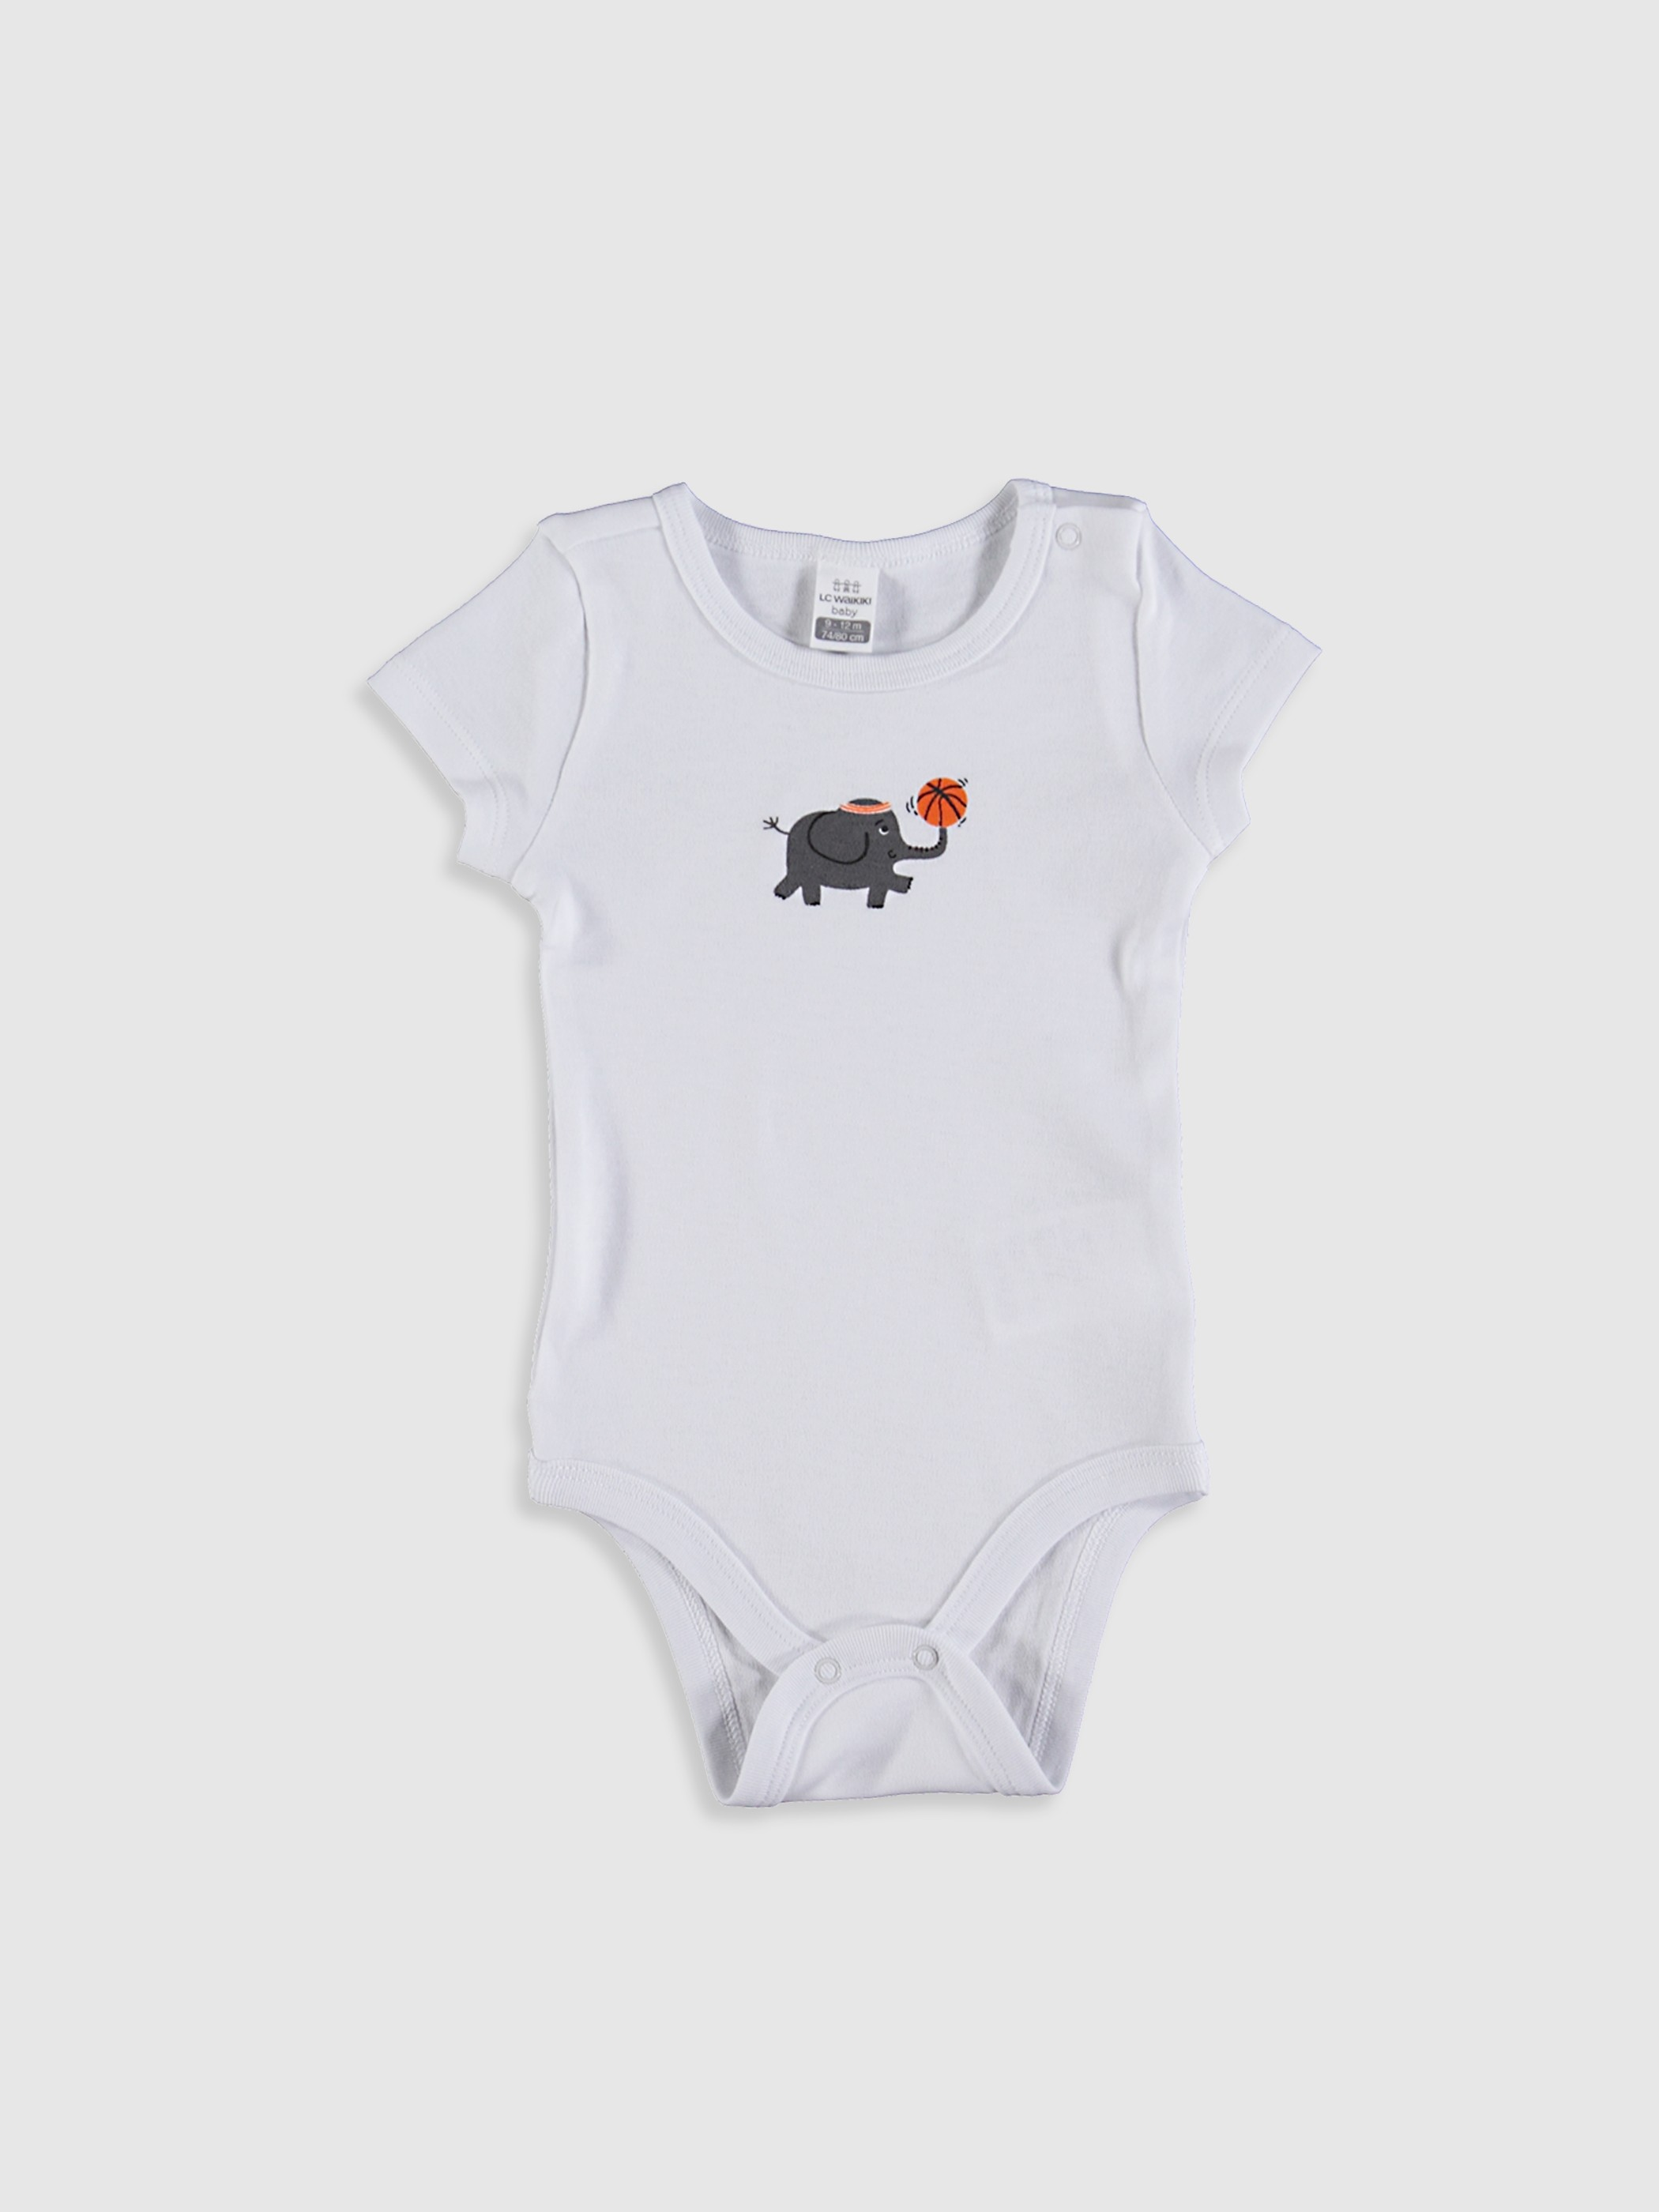 WHITE - Baby Boy's Printed Bodysuit - 0SE968Z1